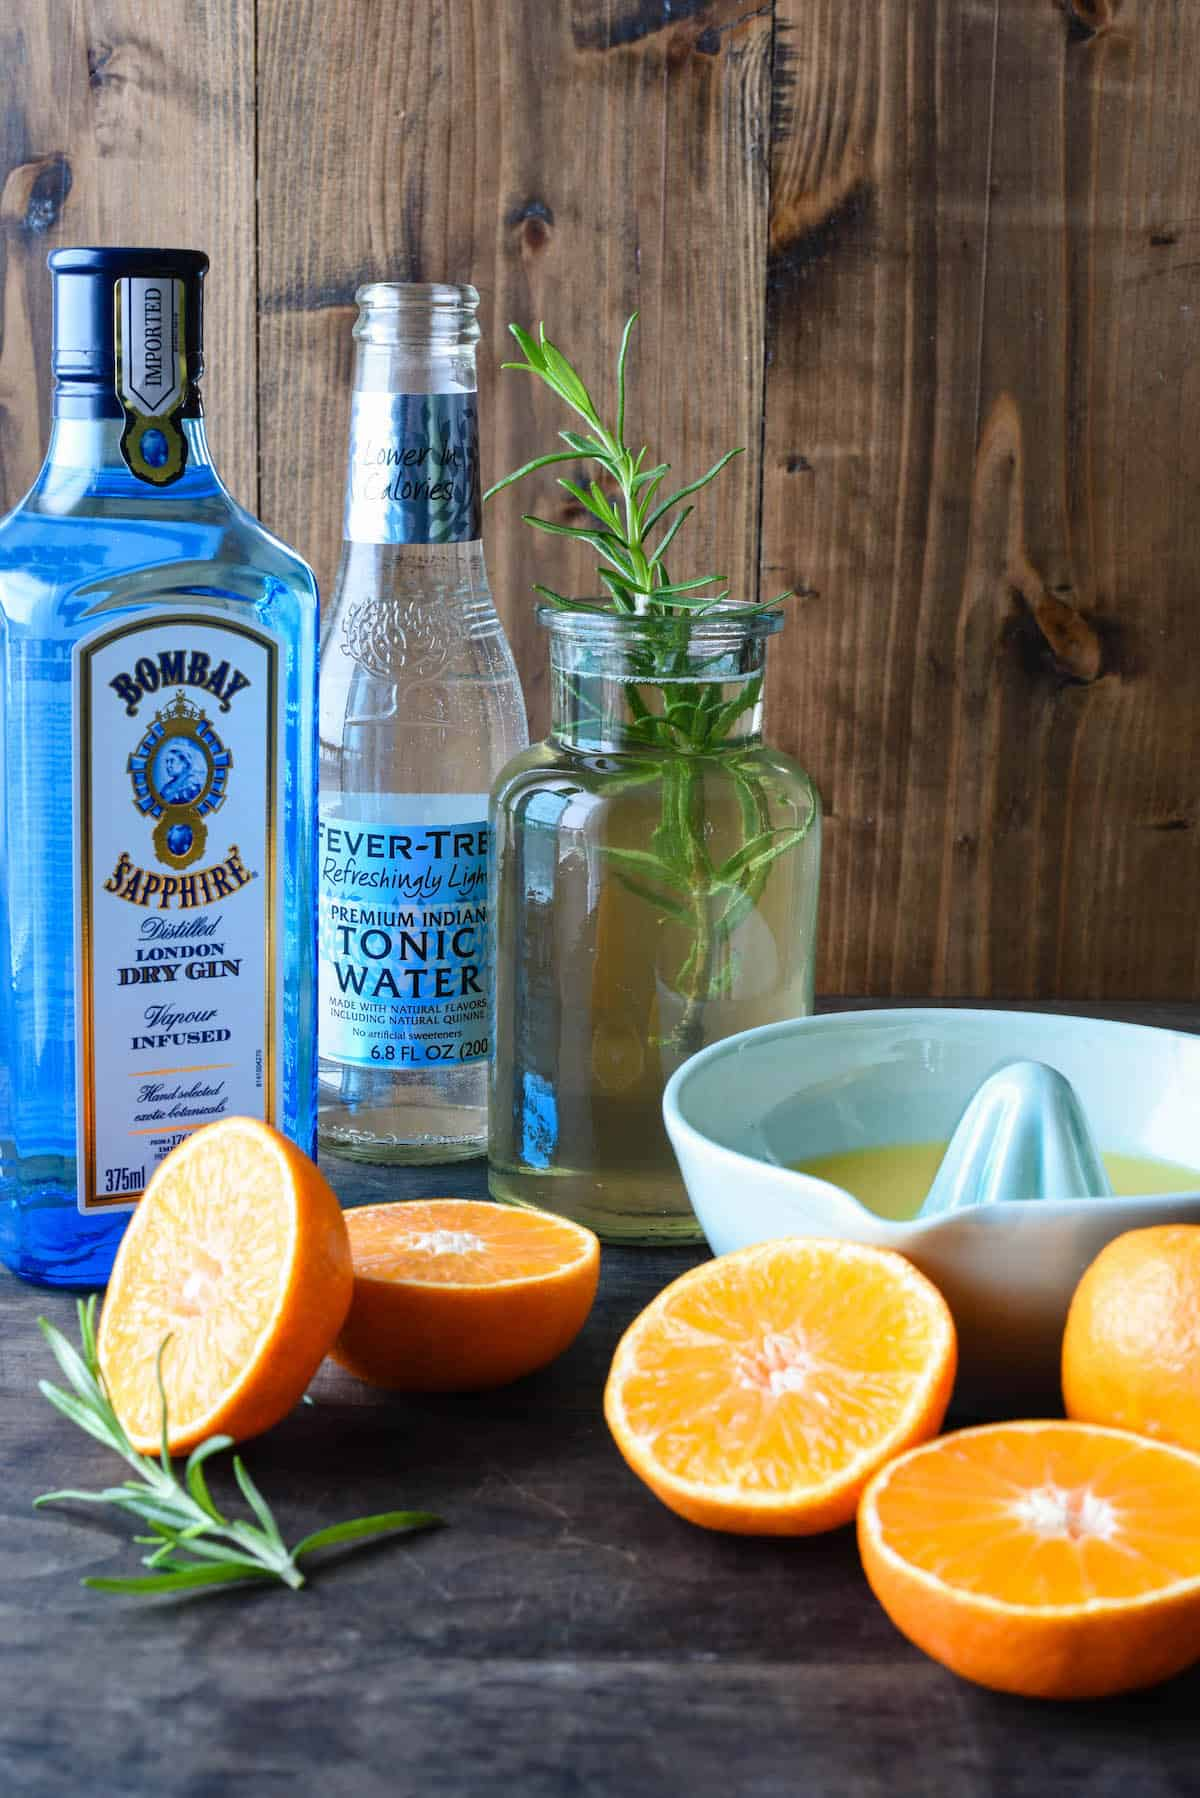 Gin and tonic water bottles, small bottle of rosemary simple syrup, ceramic juicer and cut oranges against wooden backdrop.